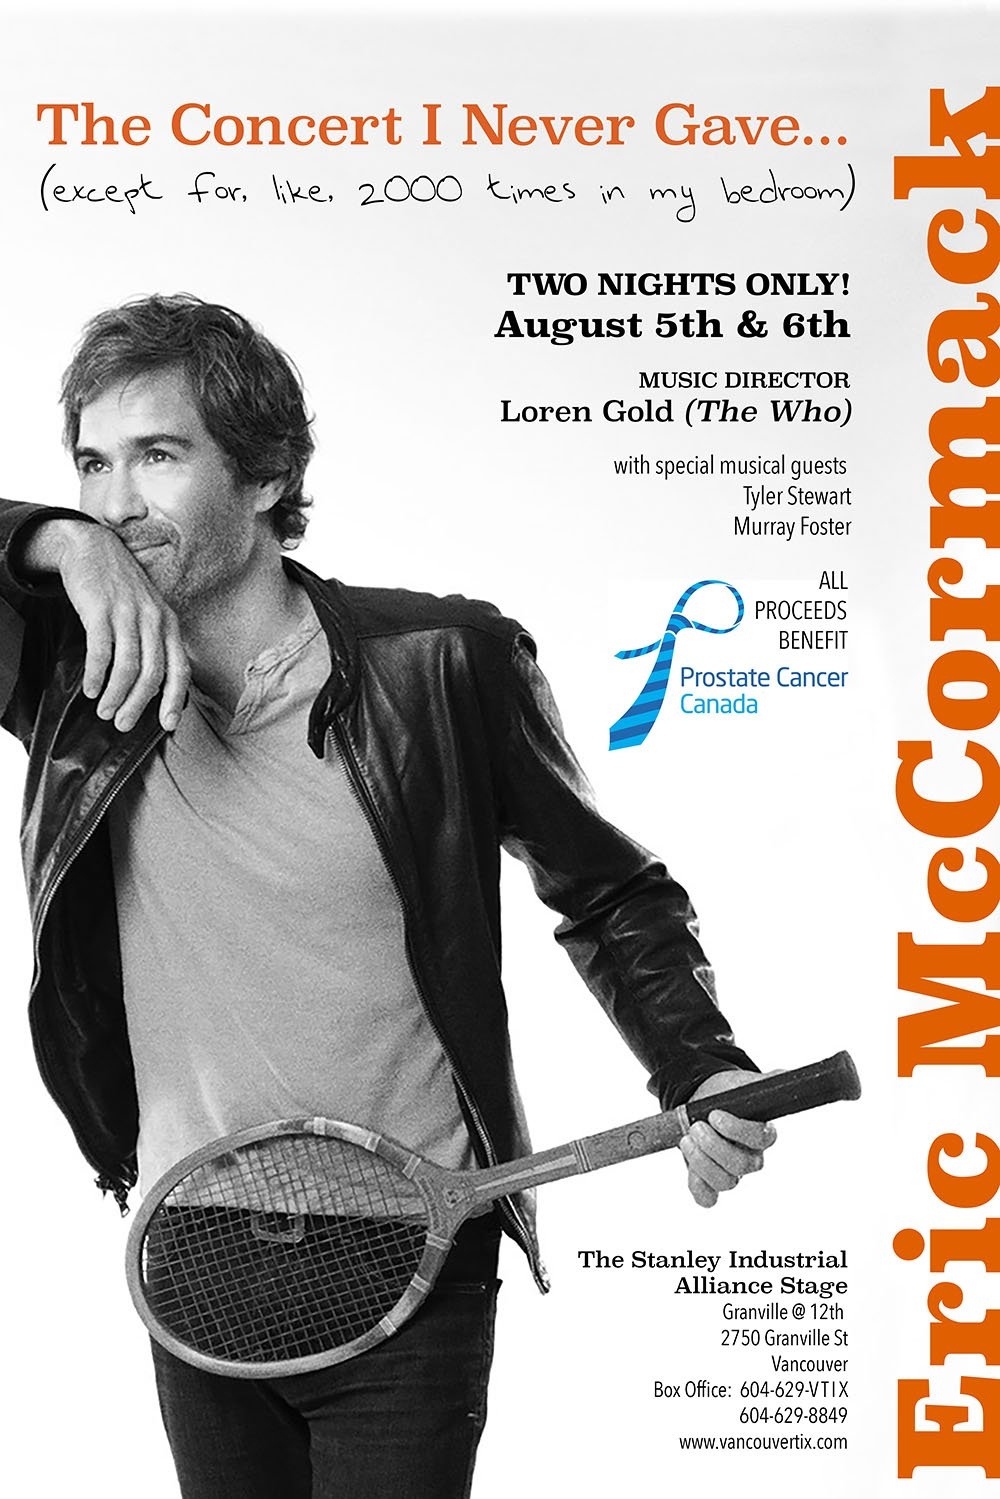 Eric McCormack will be performing in Vancouver in August